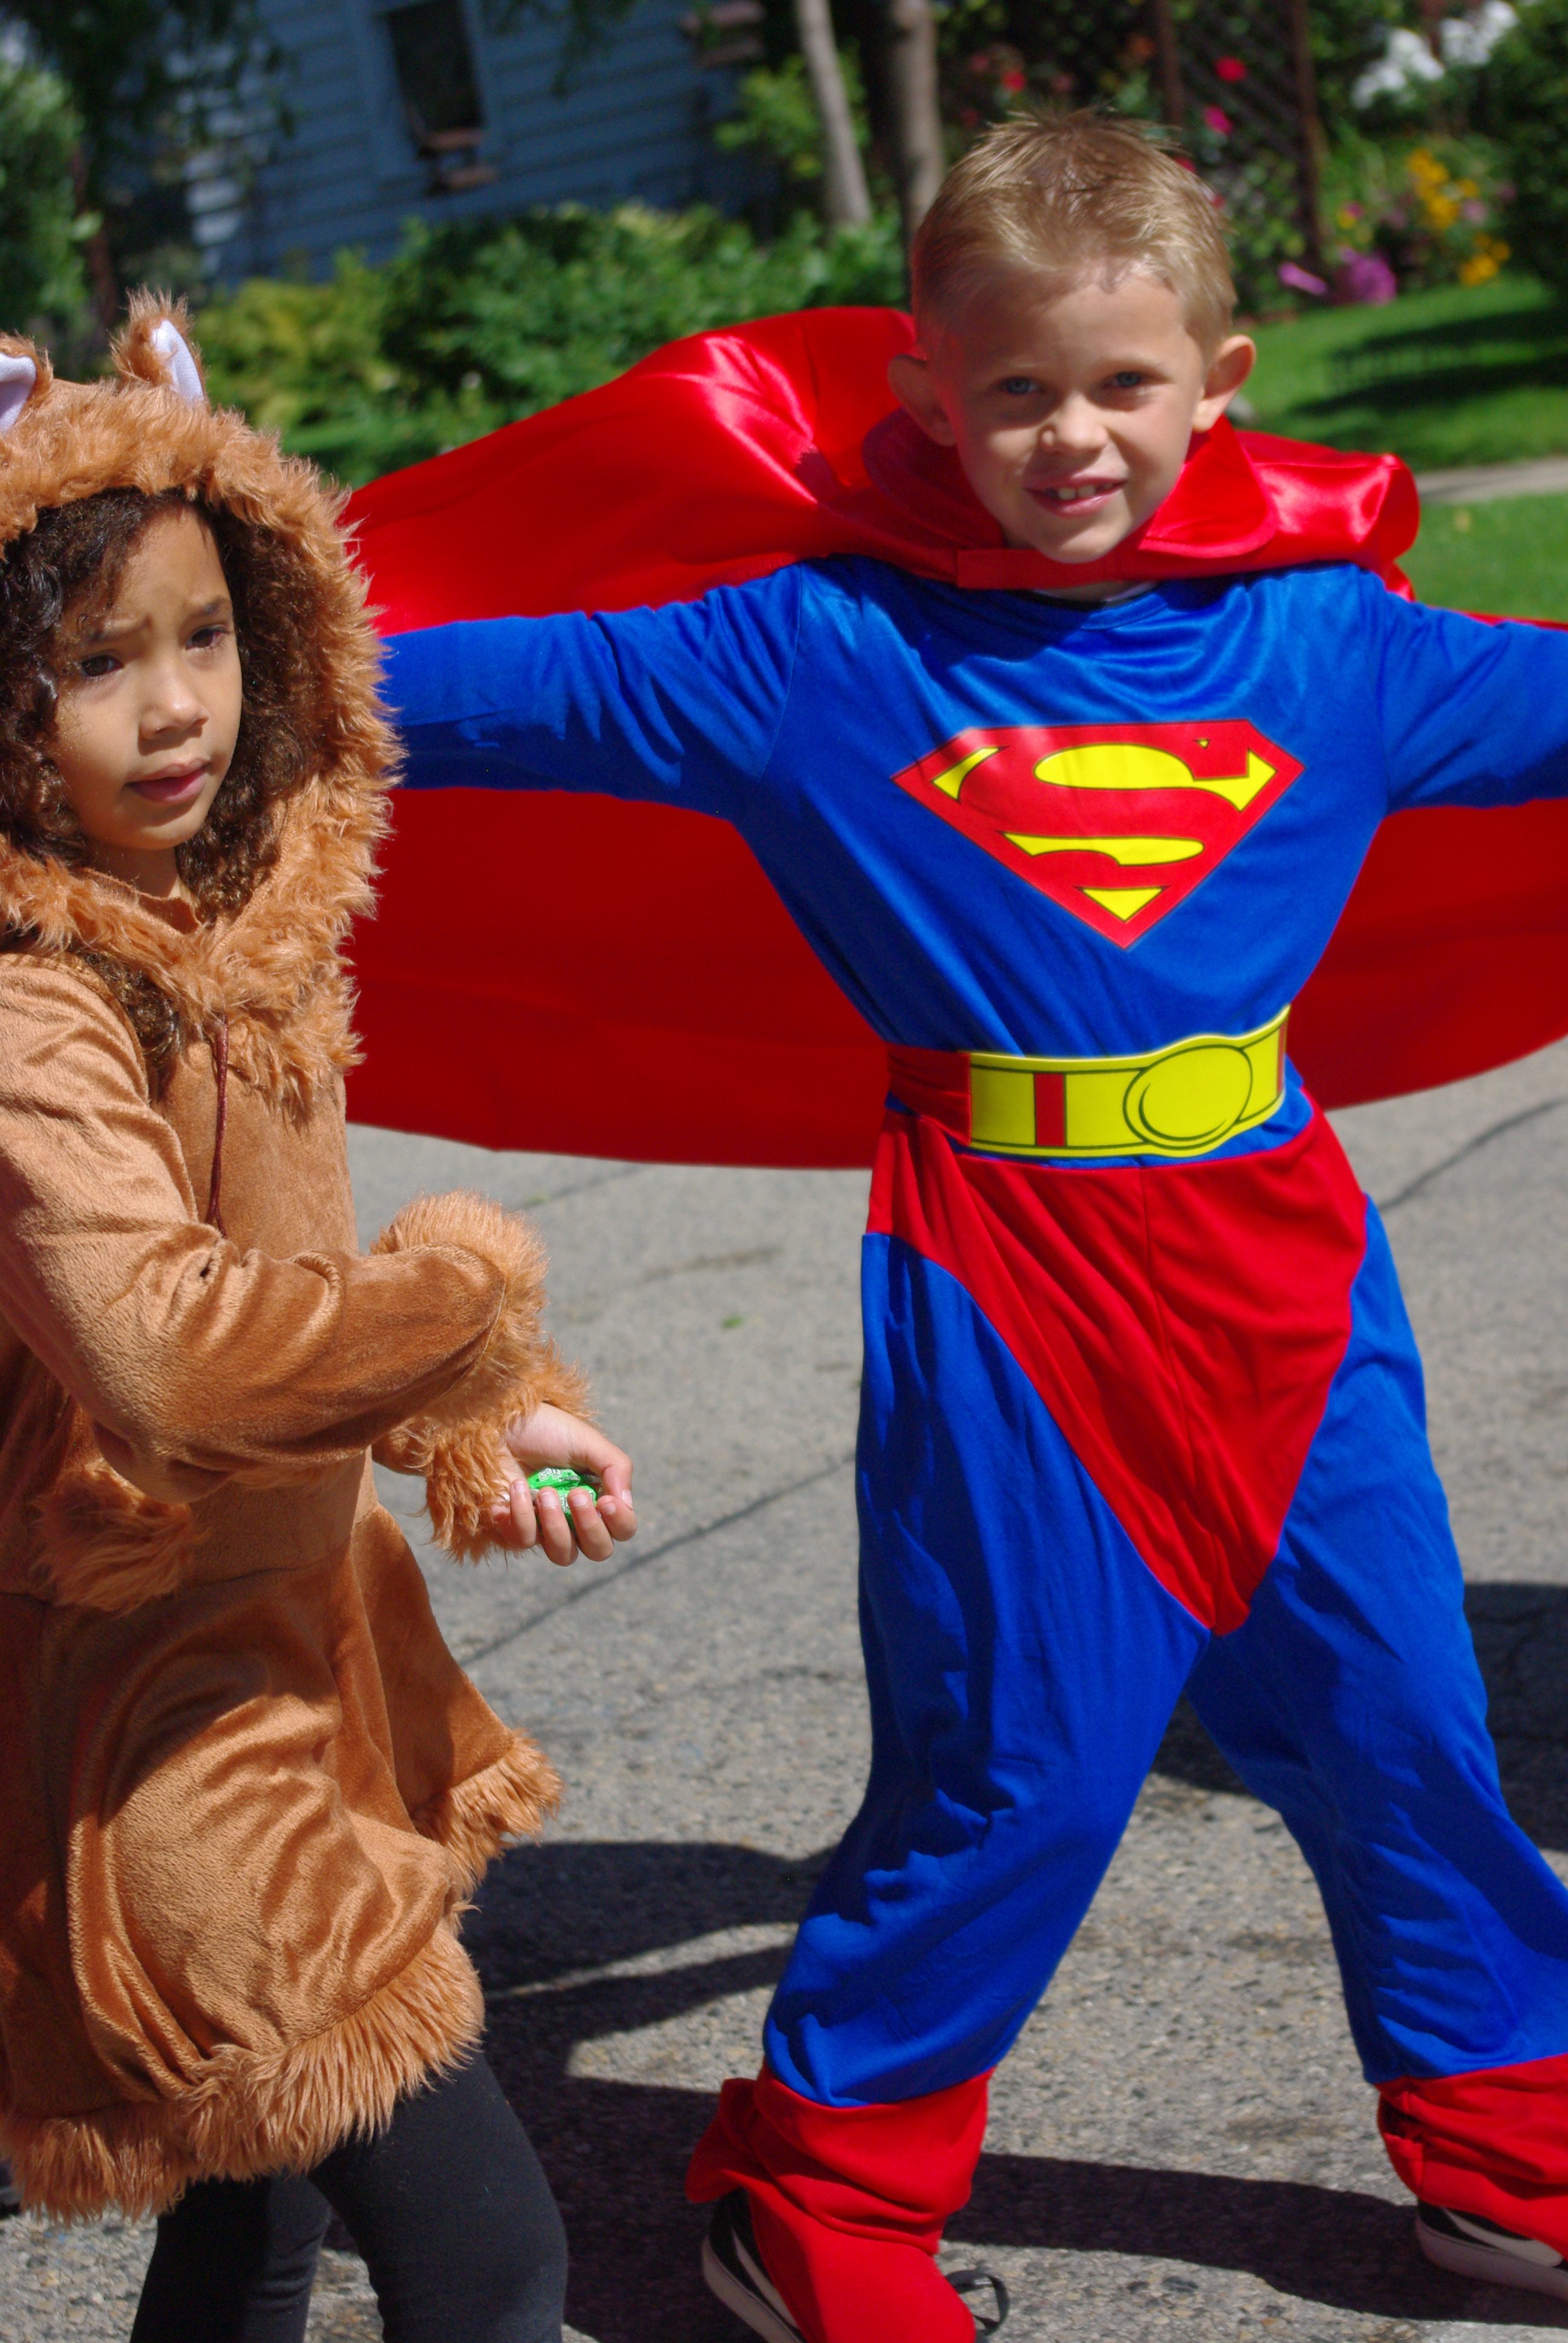 Pictures: Willy Street Fair Has Energetic Parade | CAFFEINATED ...